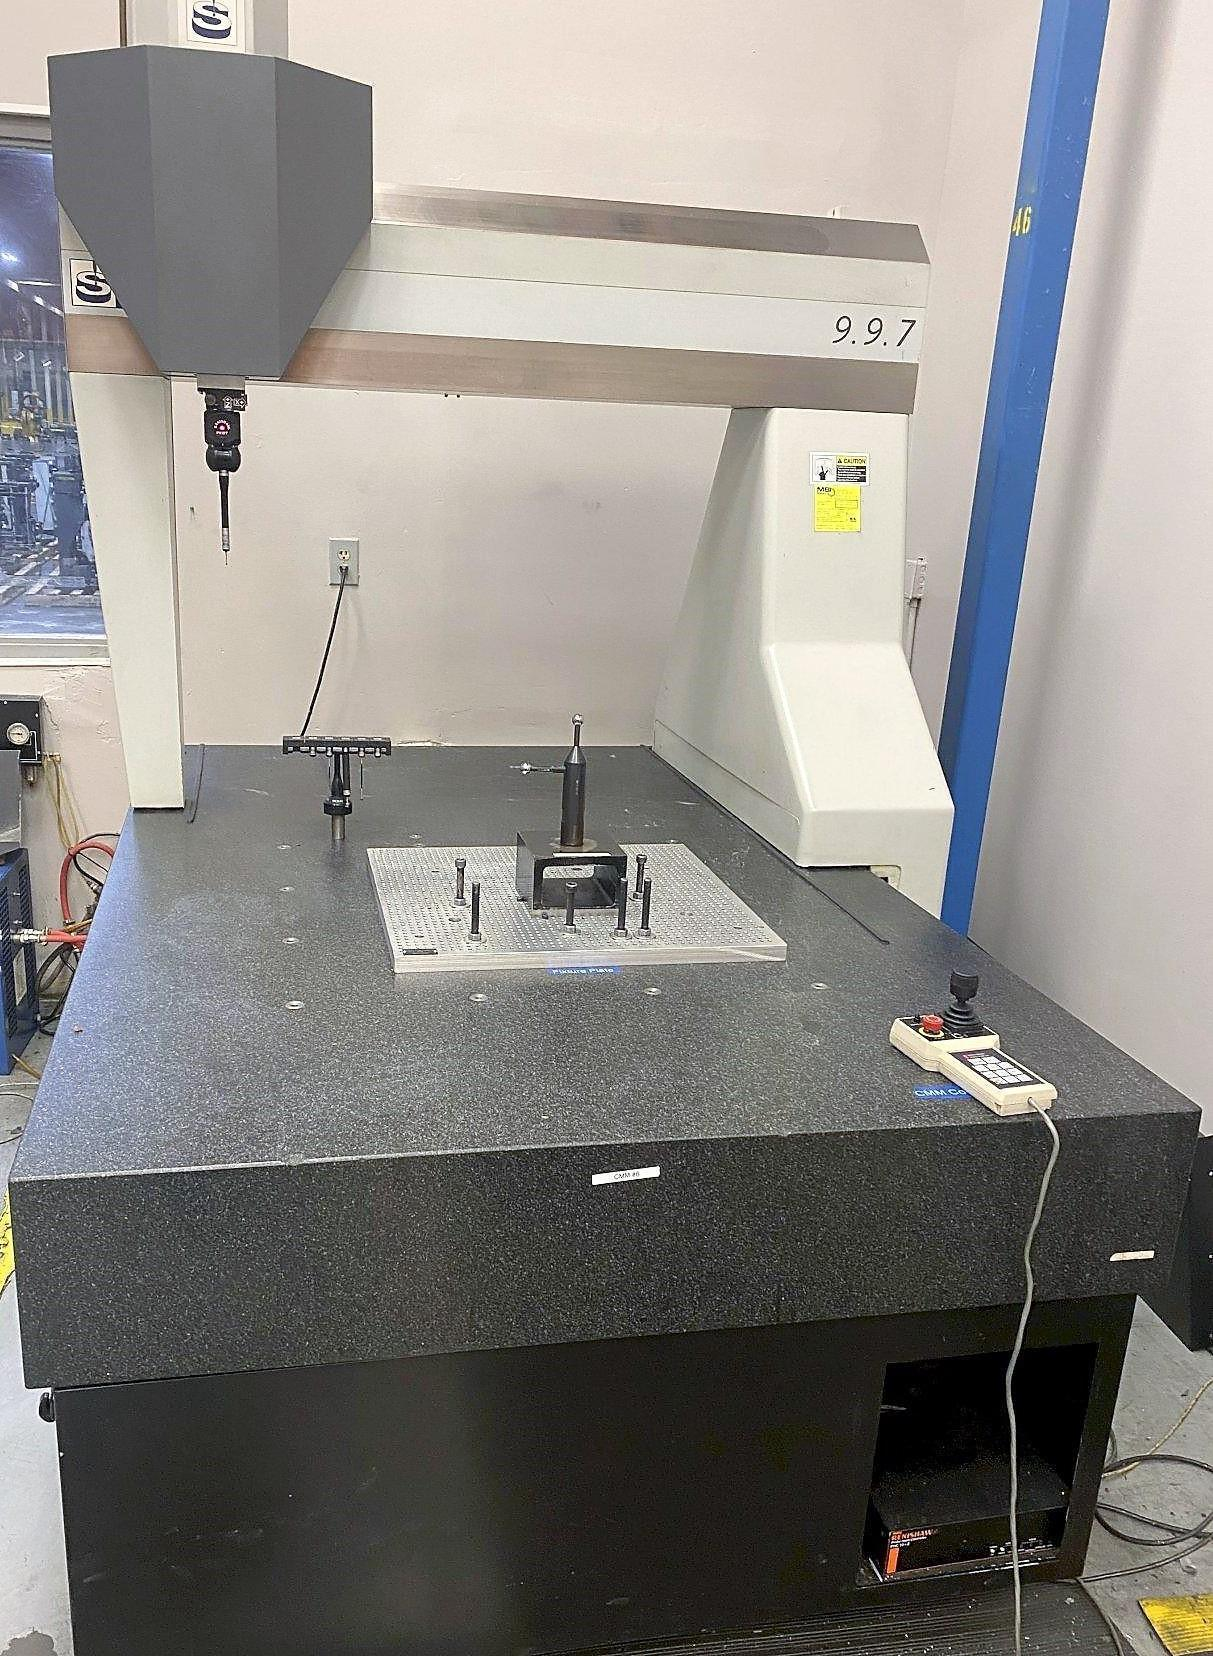 """SHEFFIELD ENDEAVOR 9.9.7 COORDINATE MEASURING MACHINE, Computer/Monitor Included, Travels X=35.4"""" / Y=35.43"""" / Z=26"""", Renishaw PH-10T Probe Head, Probe Change Rack, New 2005."""